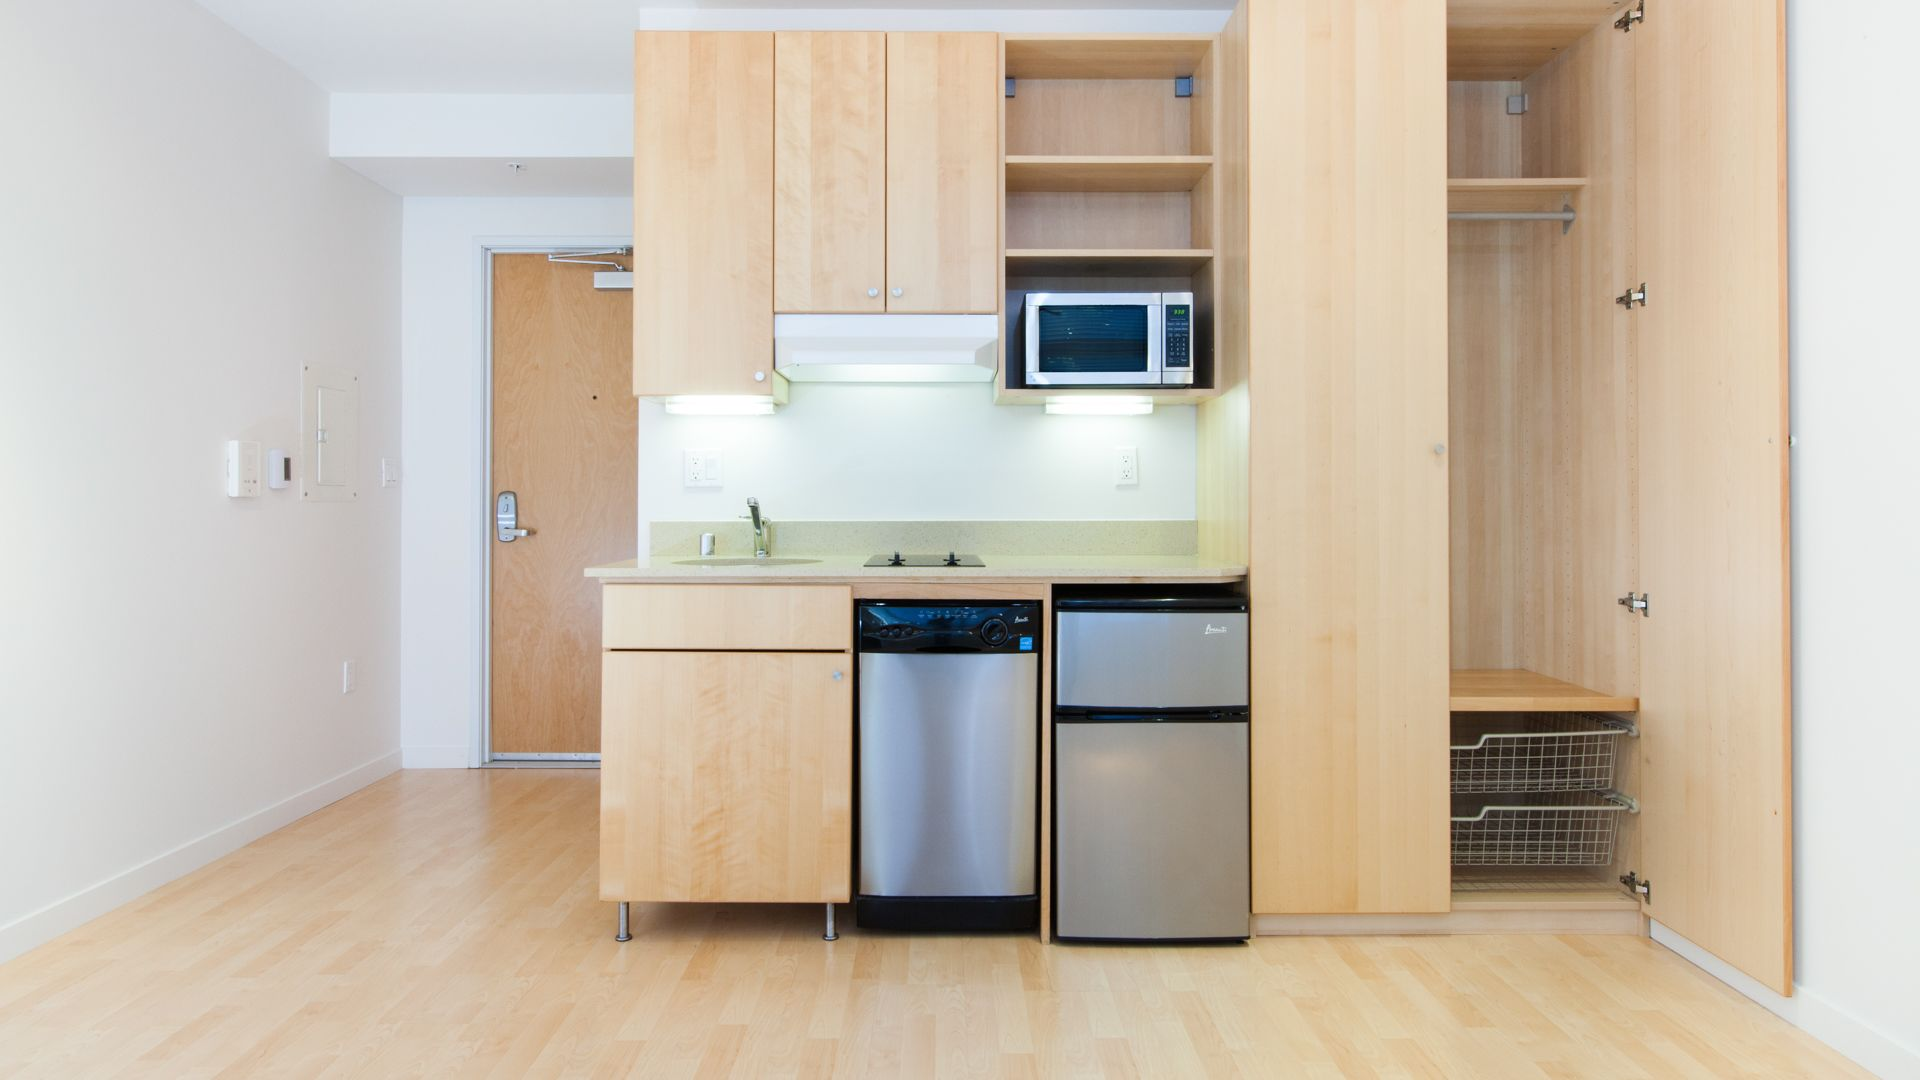 77 Bluxome Apartments - Kitchenette